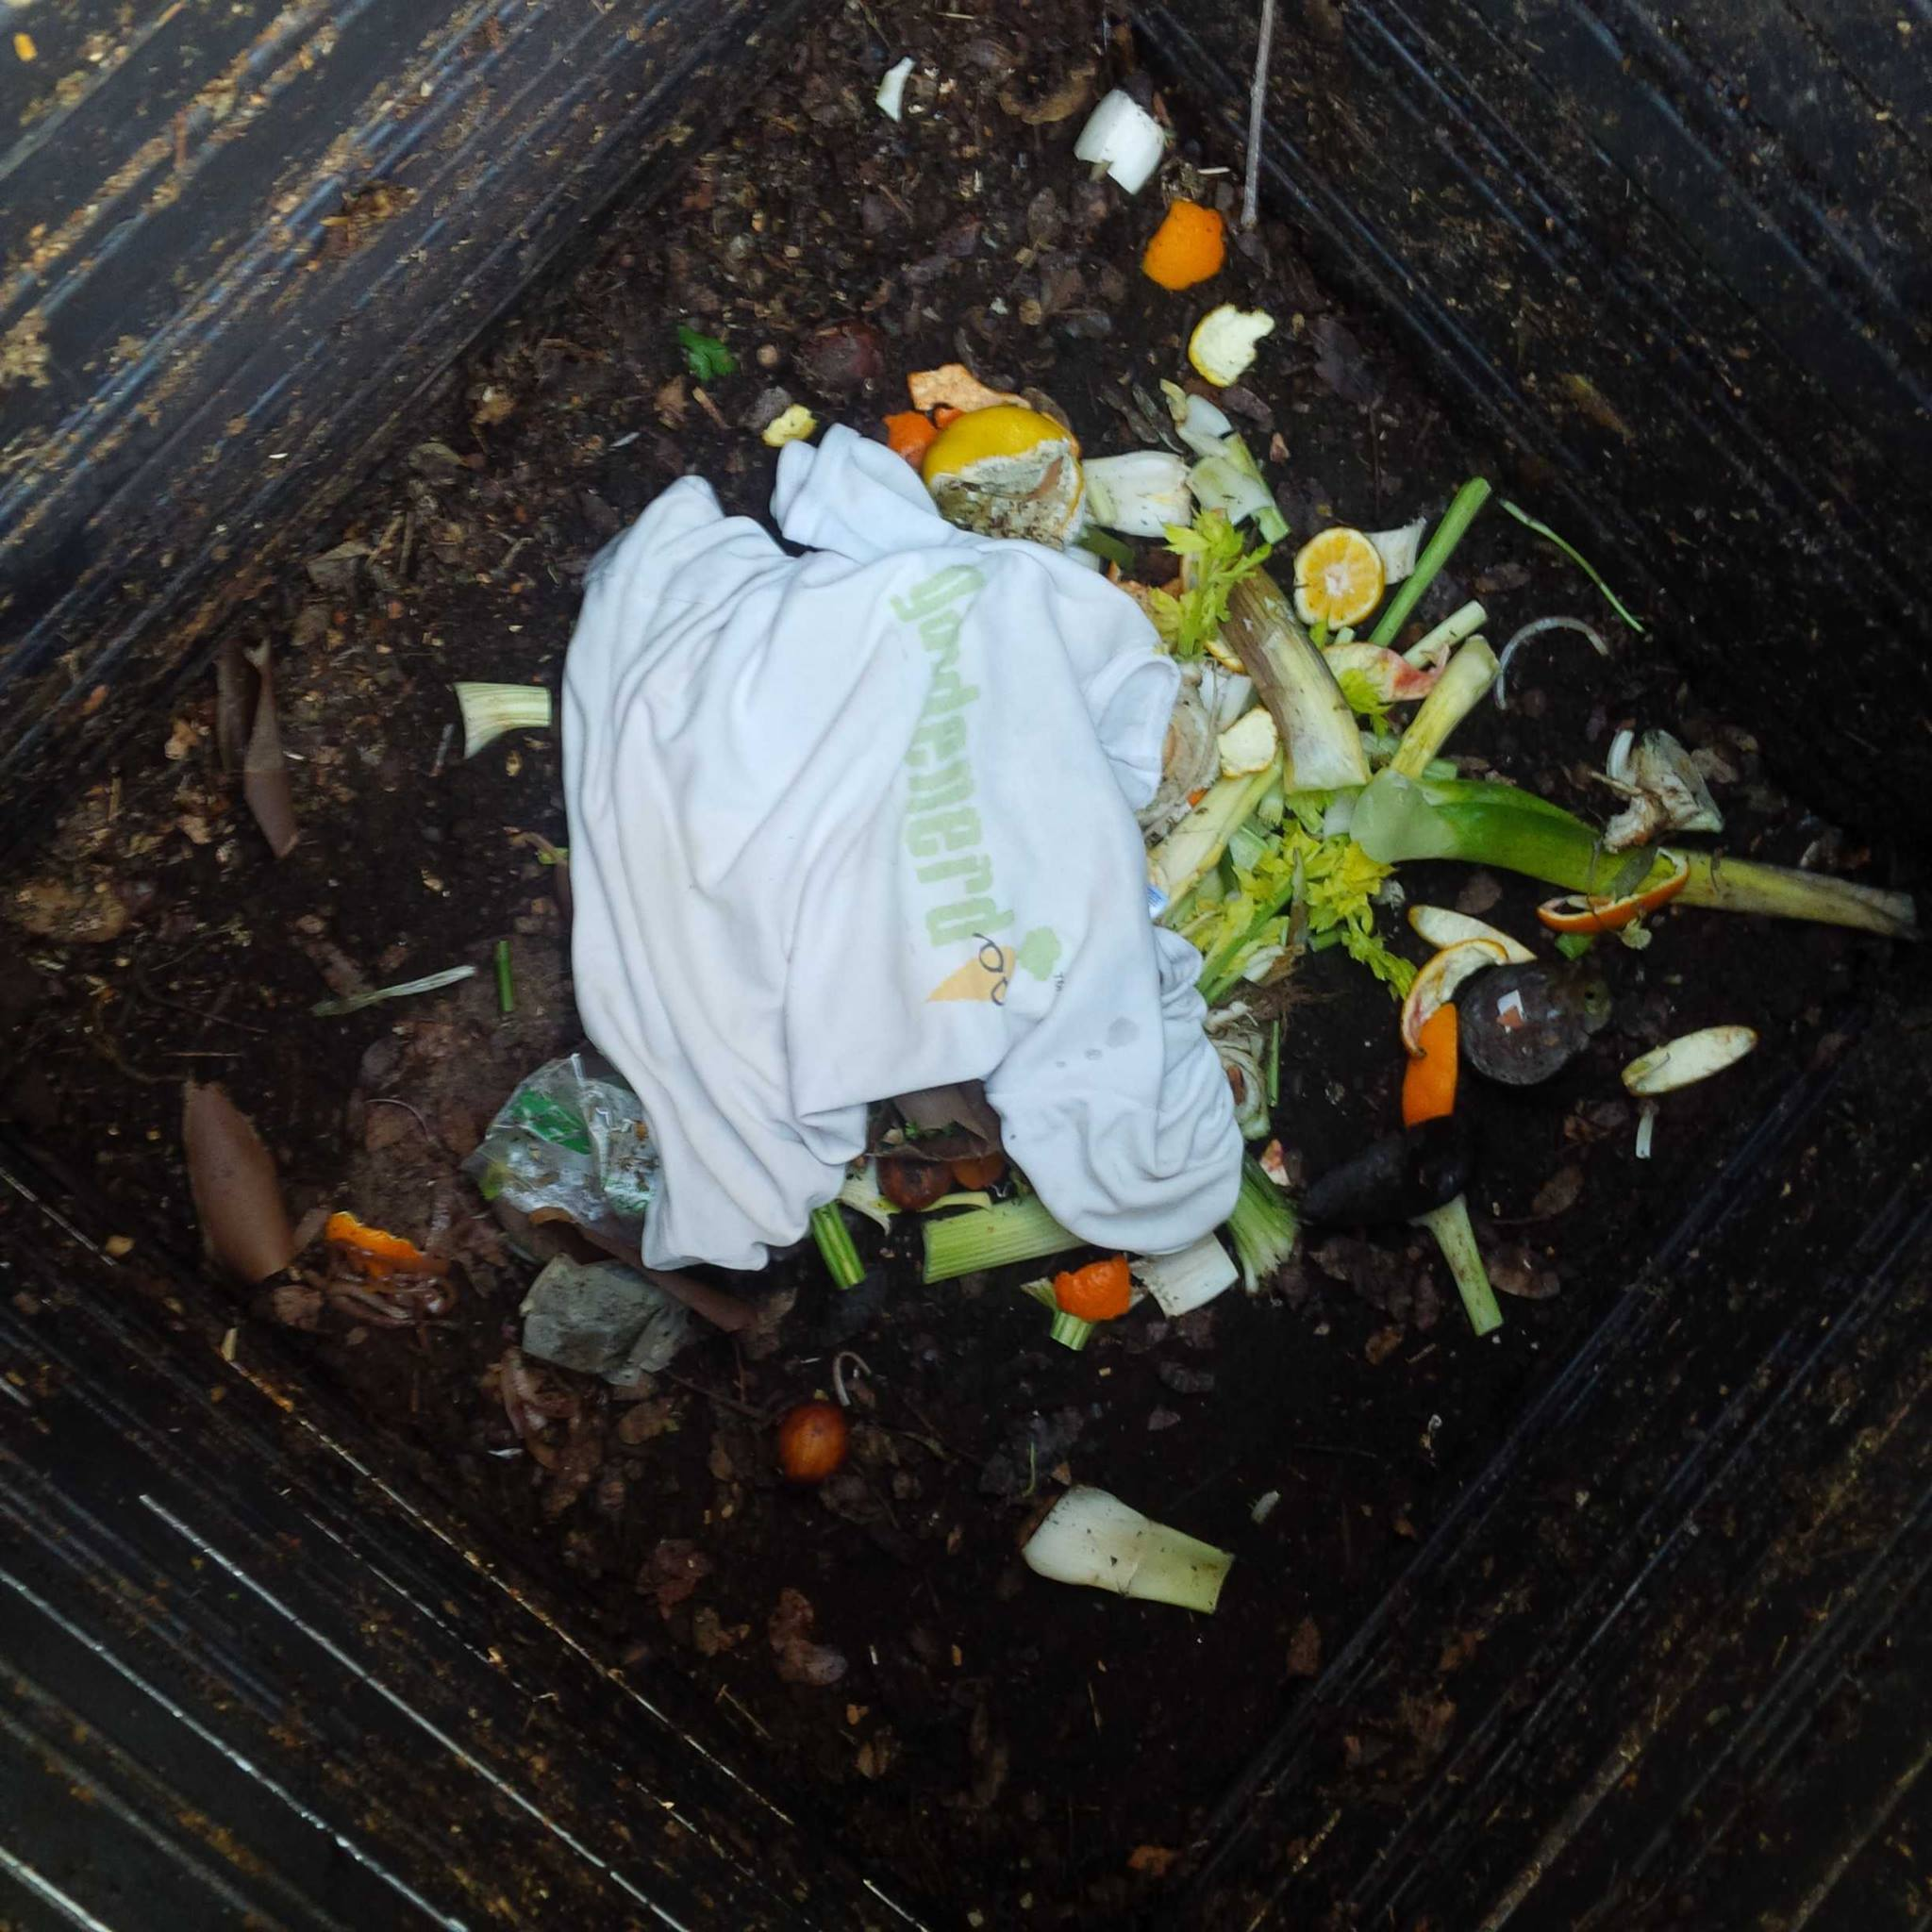 Gardenerds compost a T-shirts once it falls apart. Tear it up in strips first.